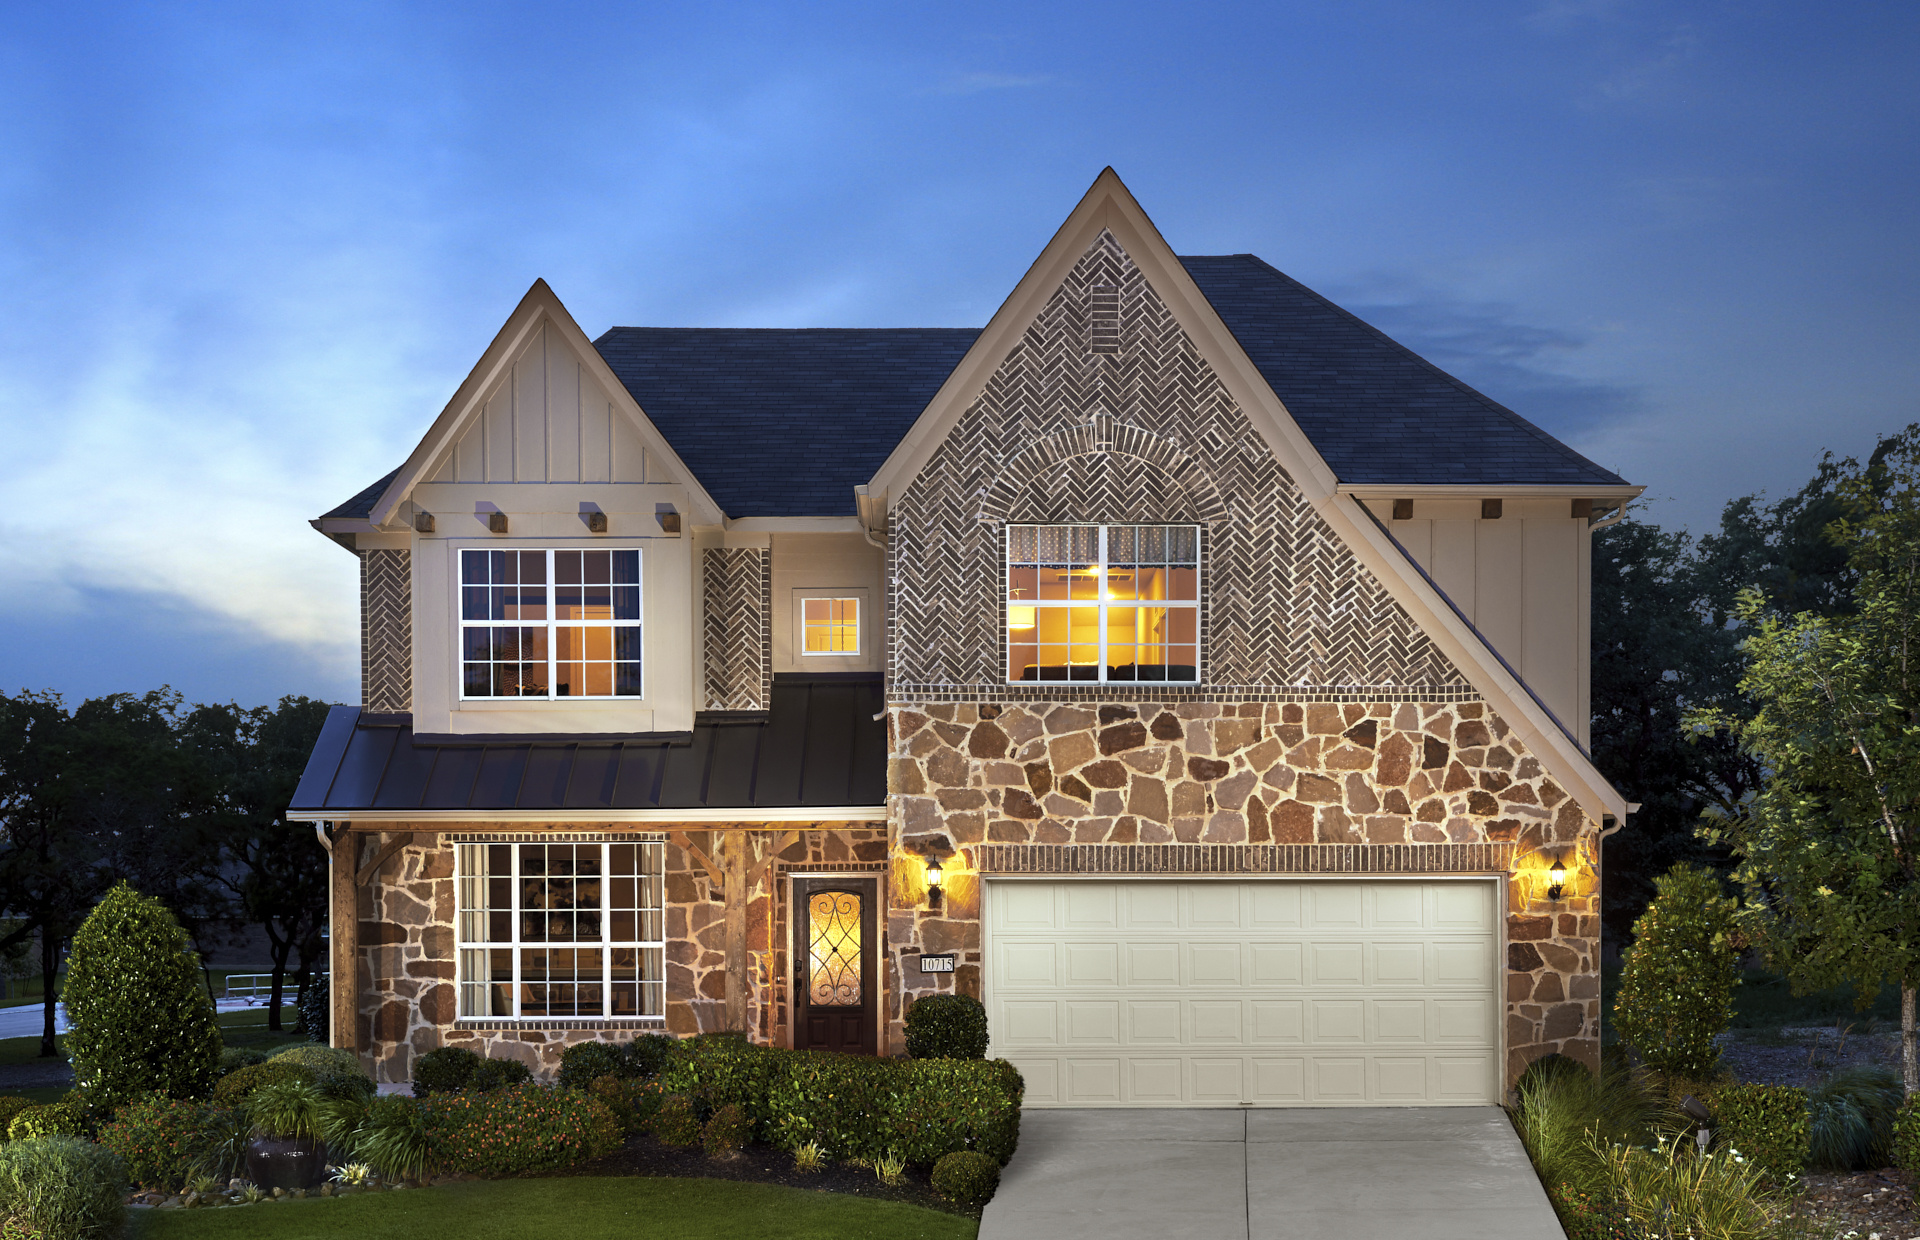 New Homes In The San Antonio Area By Pulte Homes New Home